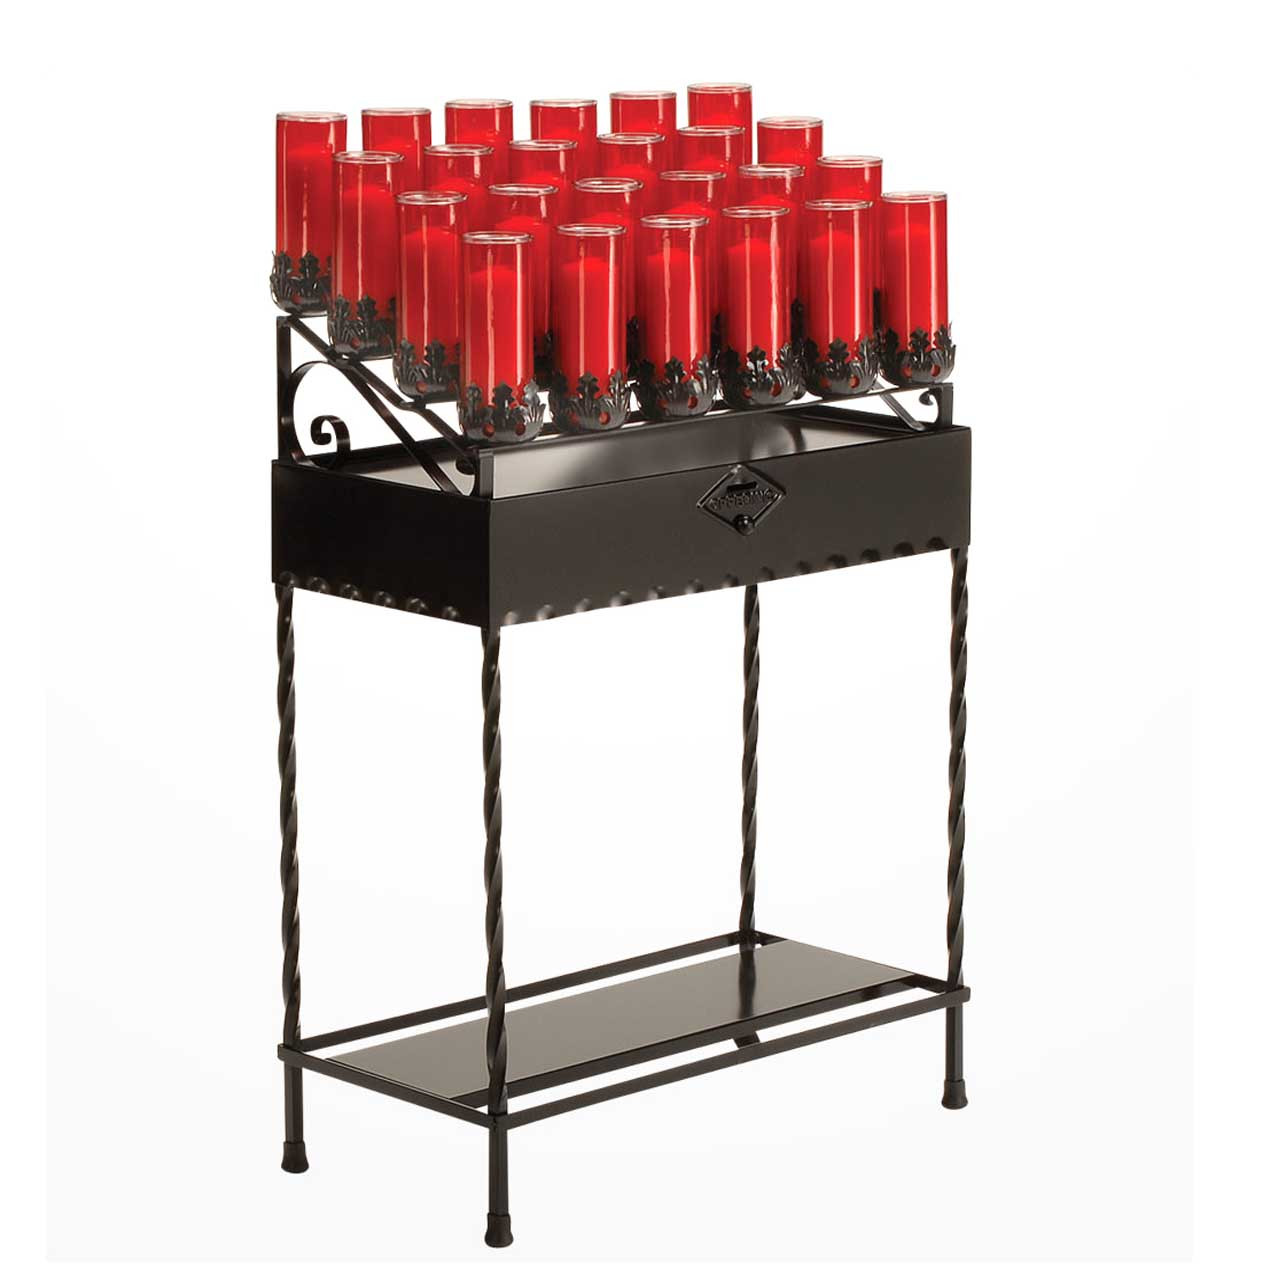 19x37 Votive Stand with Wrought Iron Legs